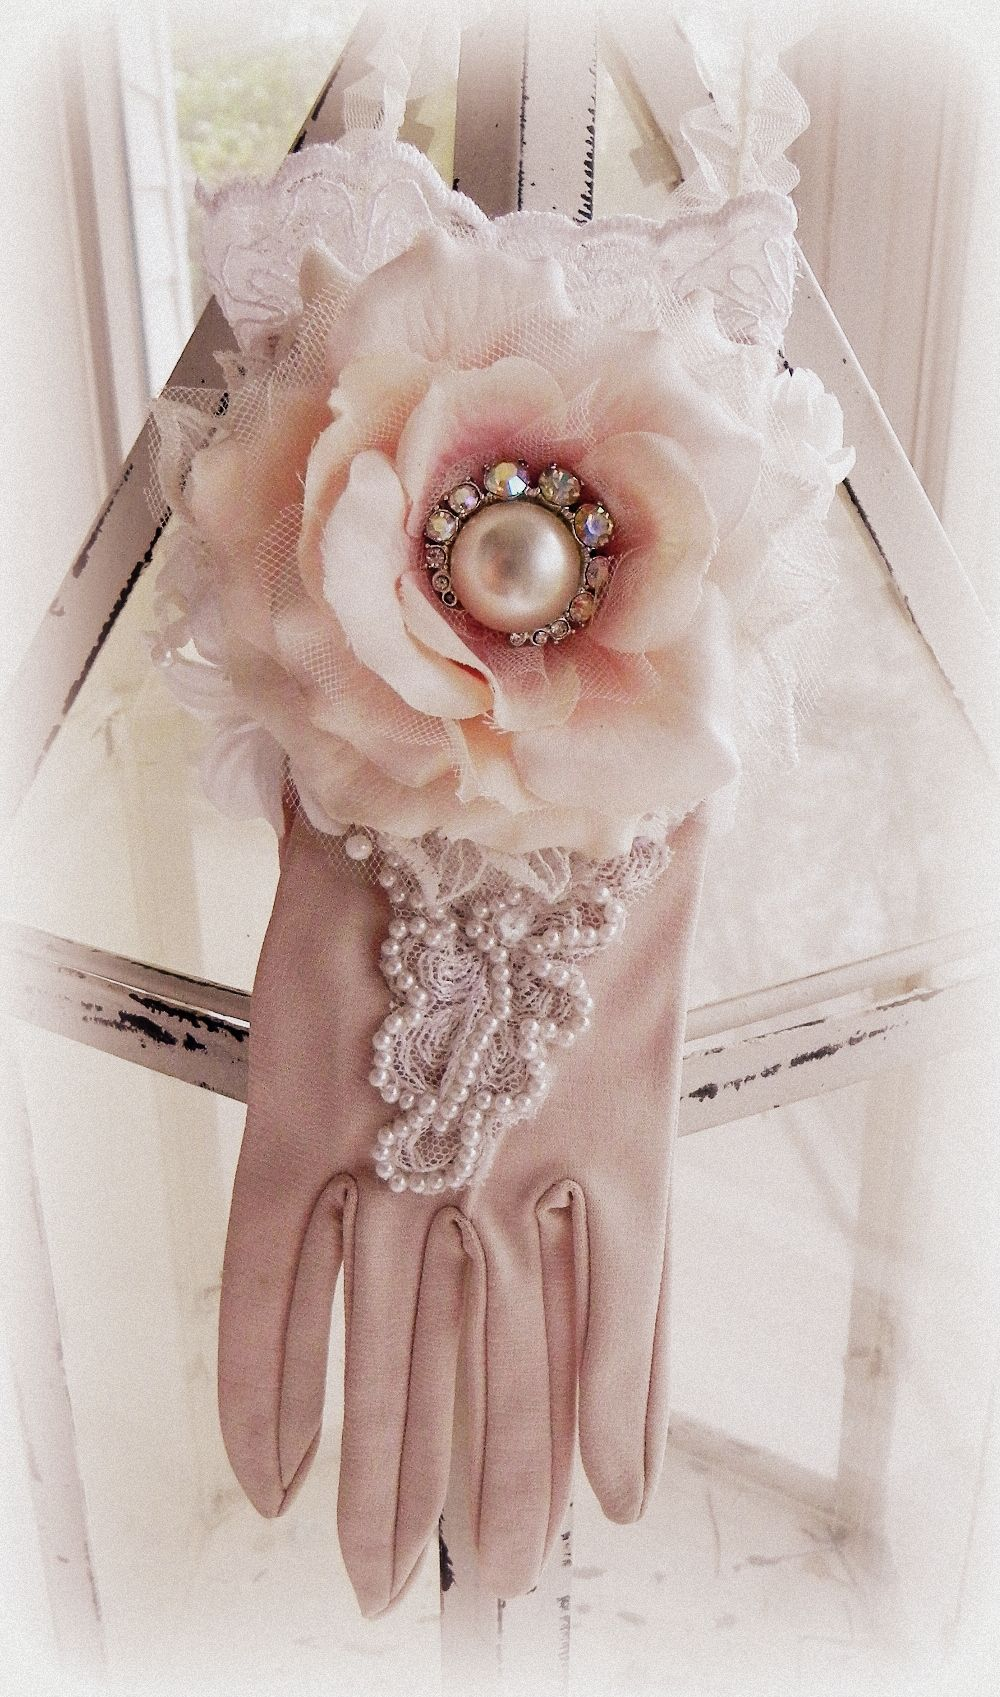 altered vintage glove.... rosette features a beautiful vintage earring